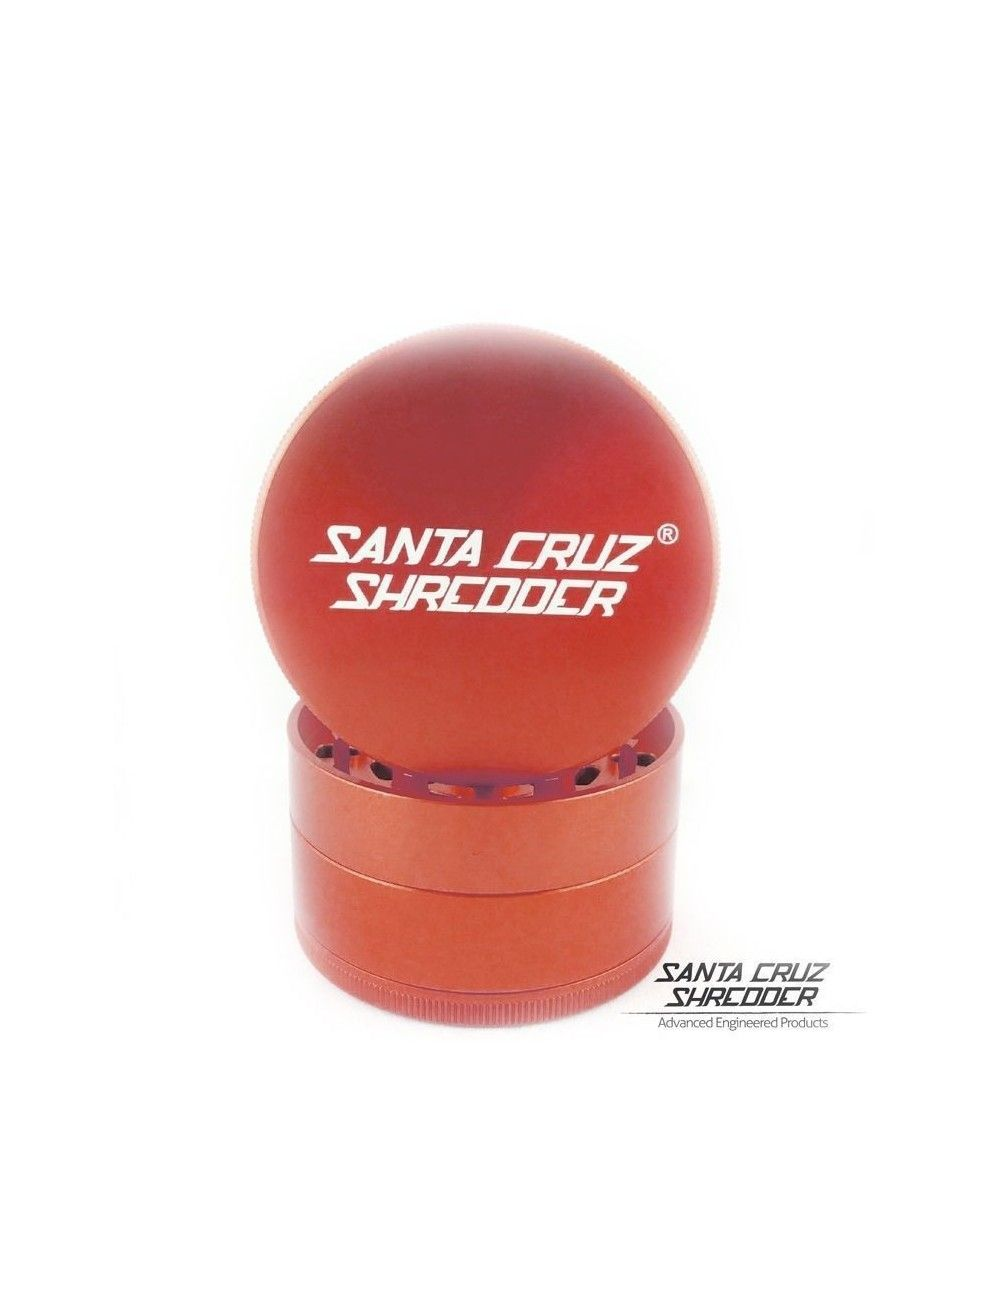 Santa Cruz Shredder 4-piece Large - Red